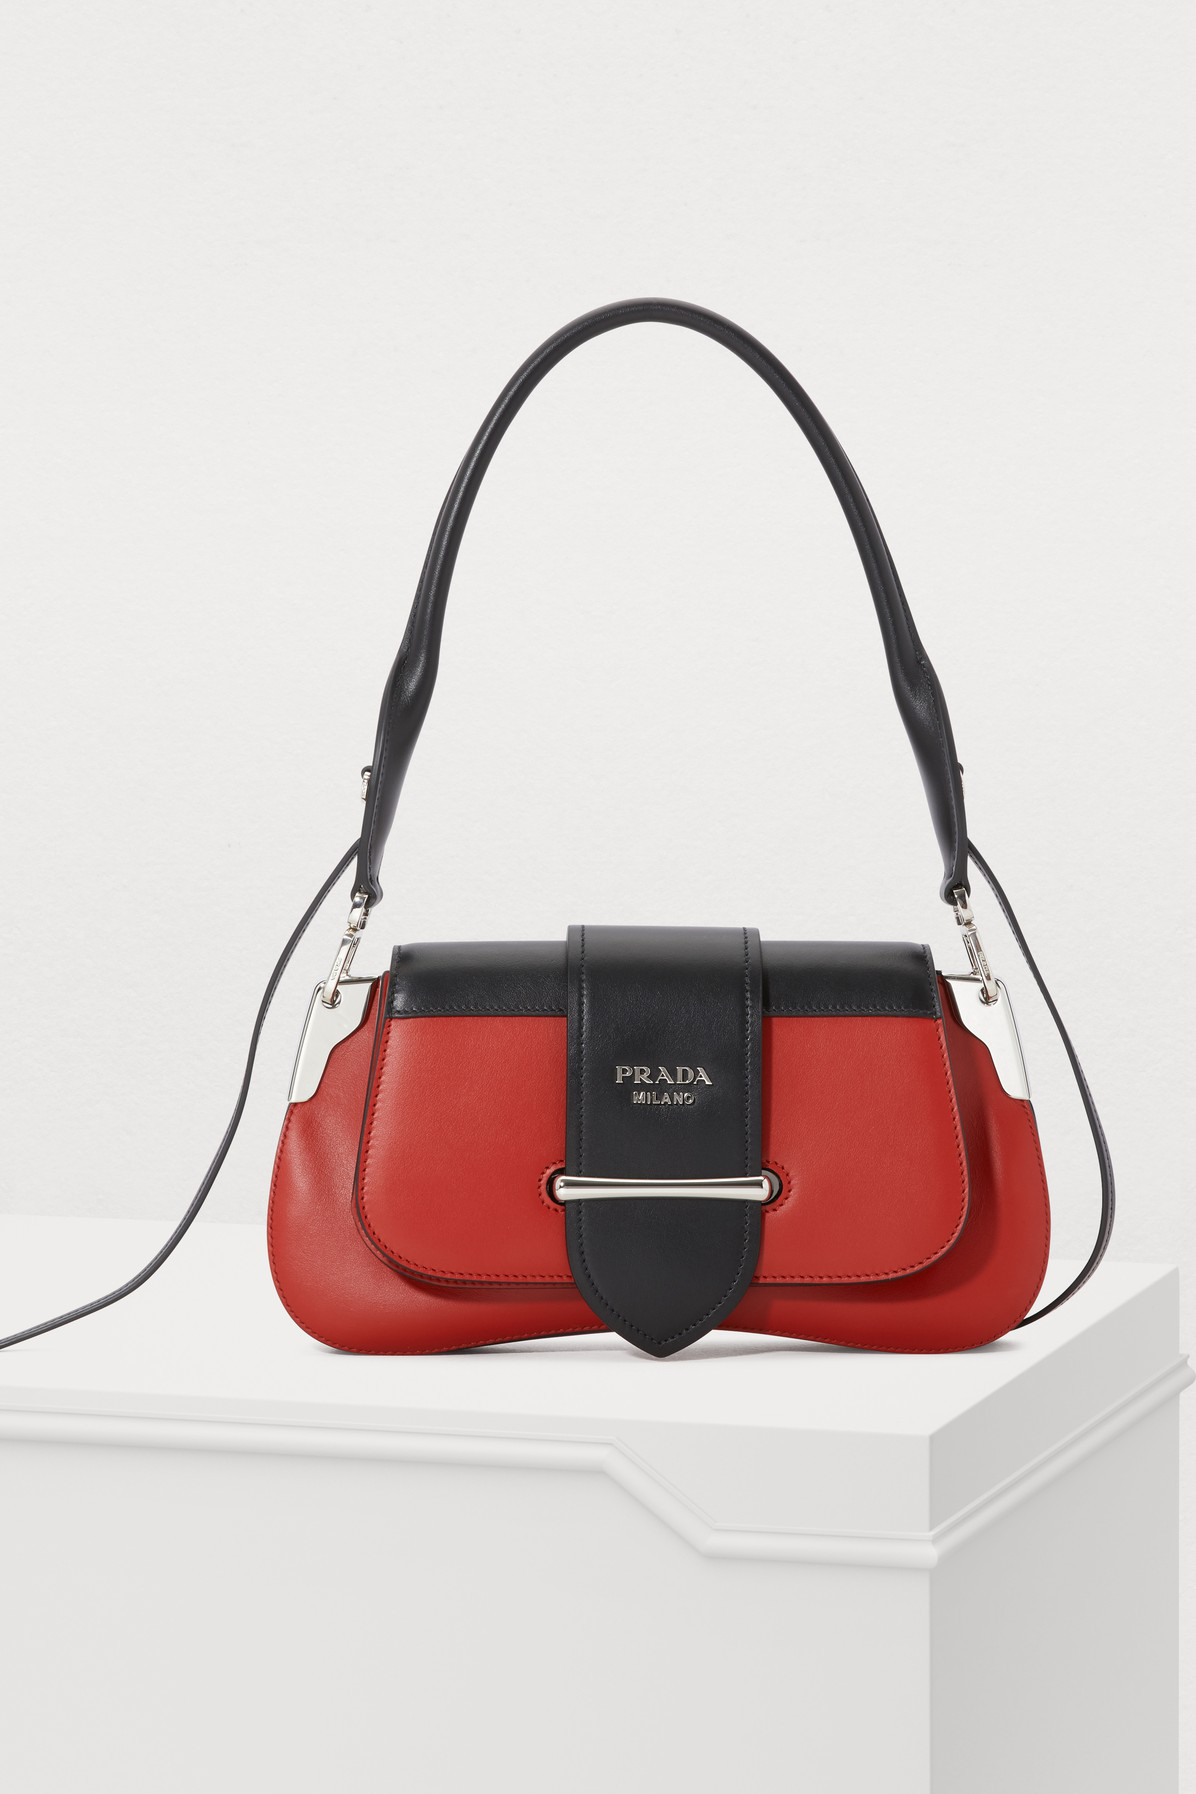 59d9dc4ad33e Prada Sidonie Leather Shoulder Bag In Red